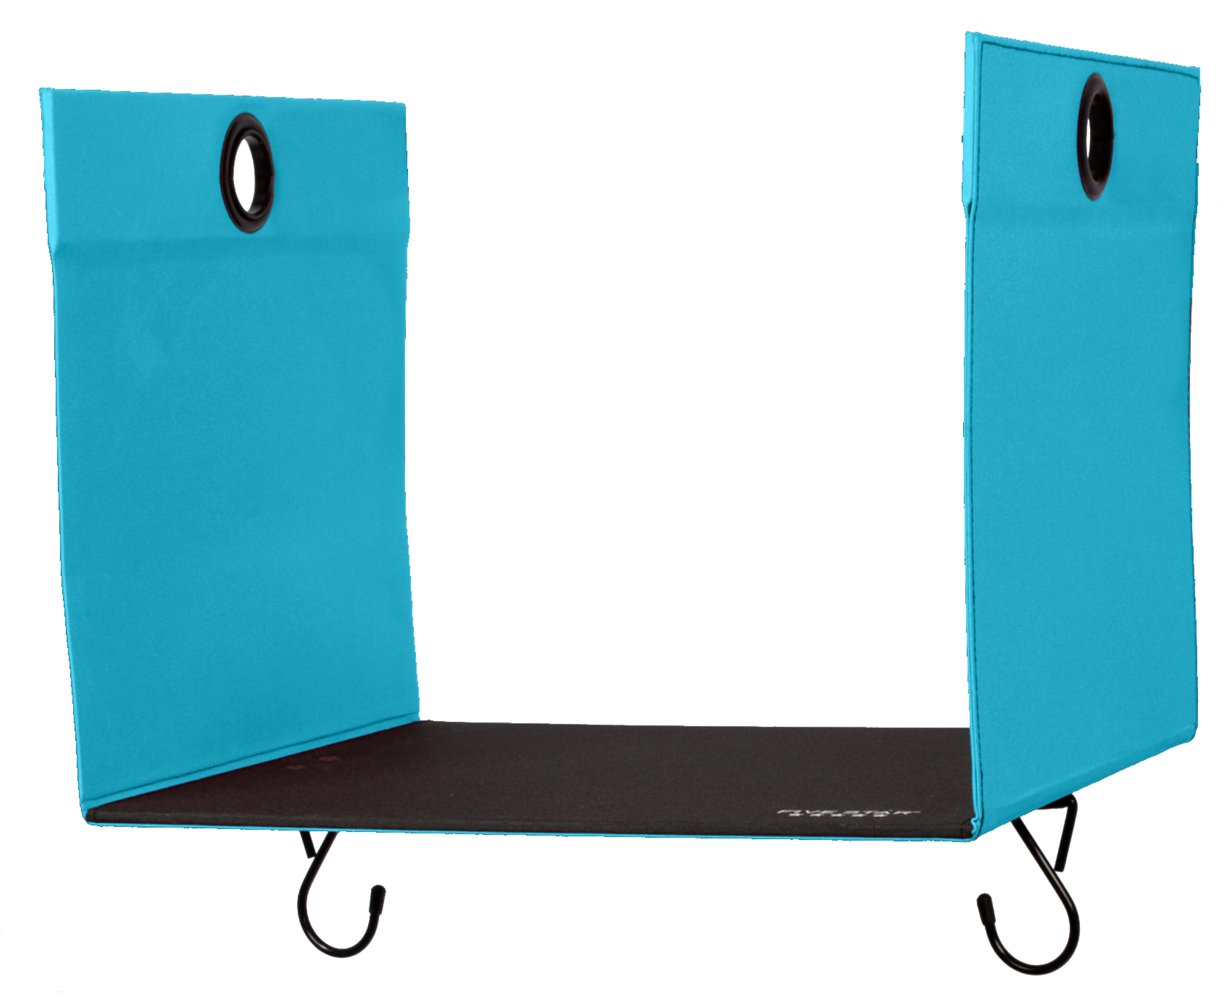 Five Star Locker Shelf Extender, Teal (72894) ACCO Brands